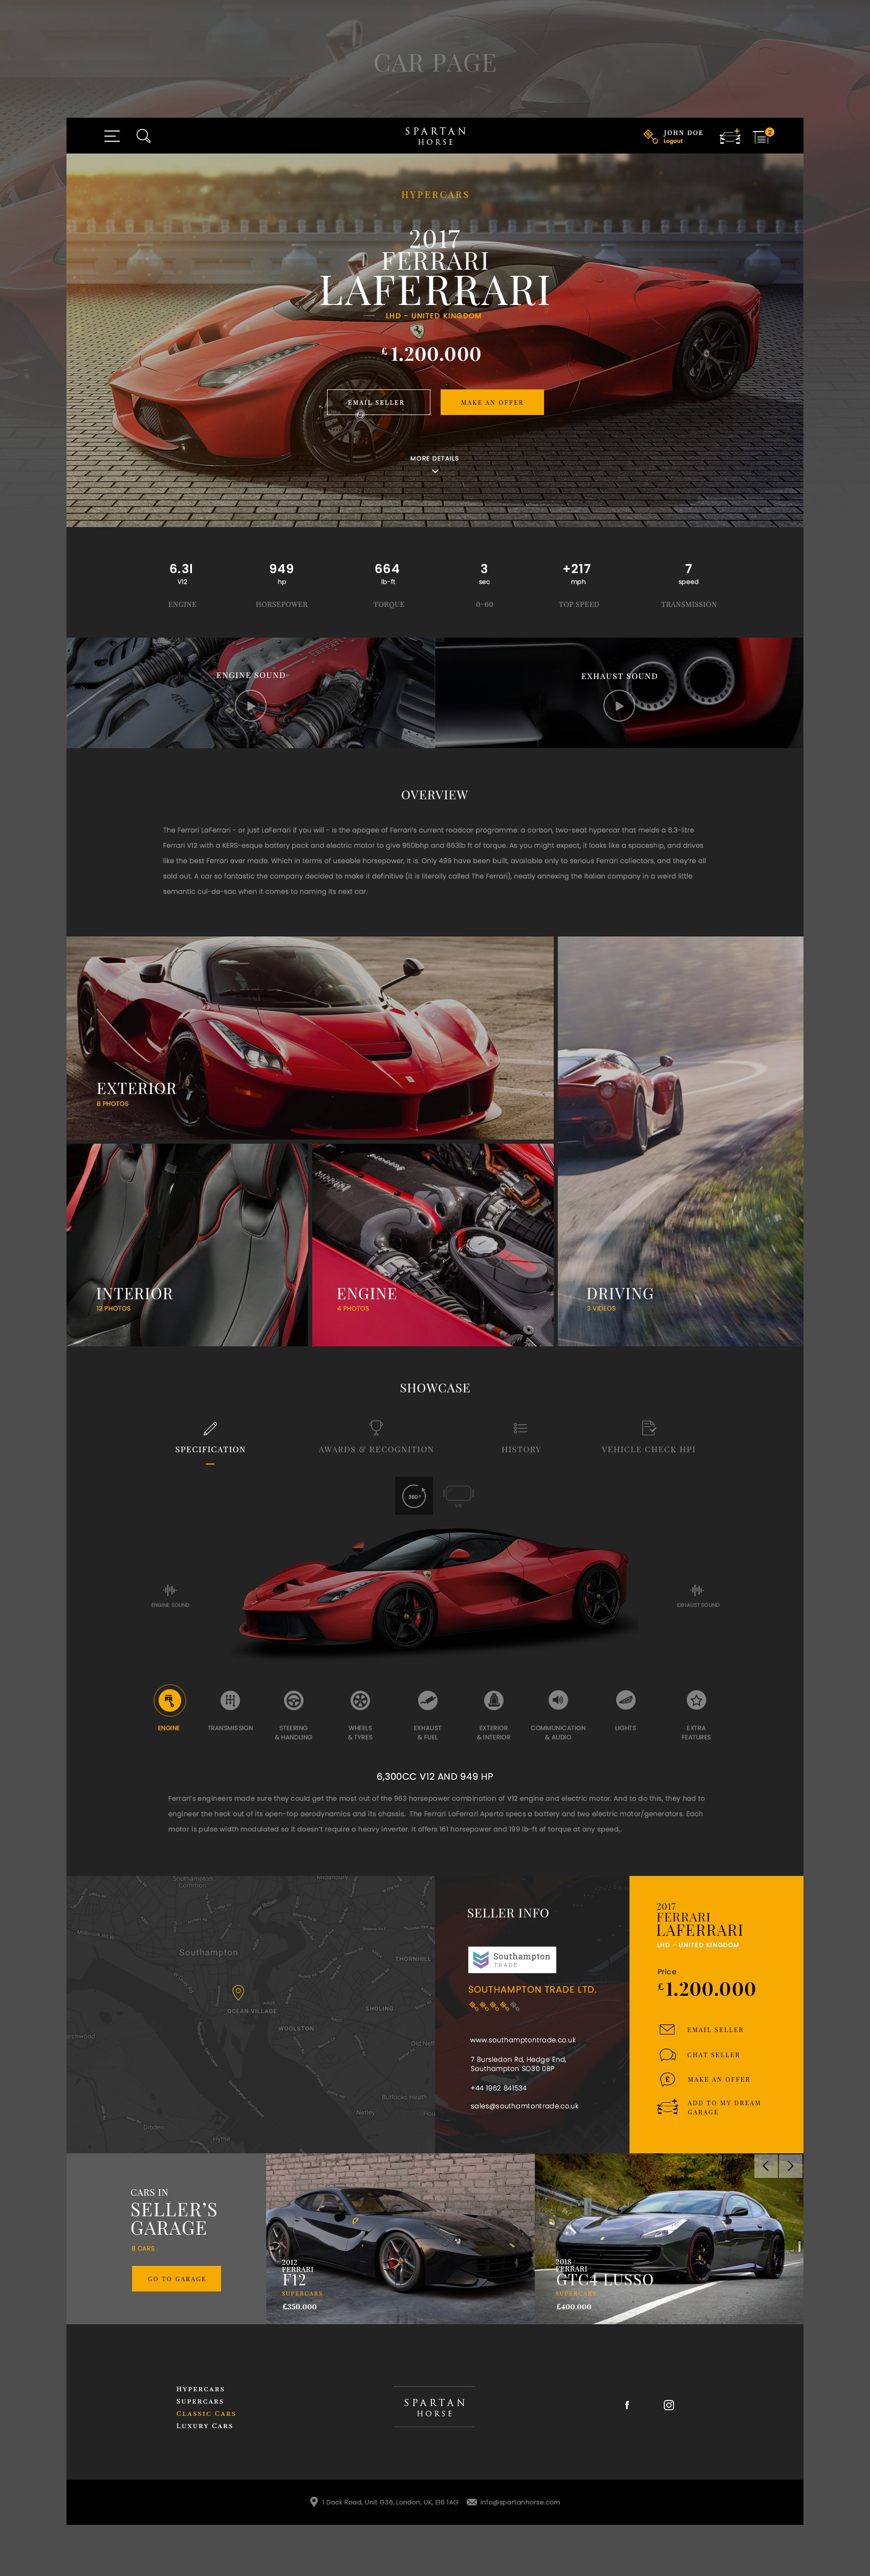 Big Project - SPARTAN HORSE needs a Website for SuperCars Classified Search Engine.